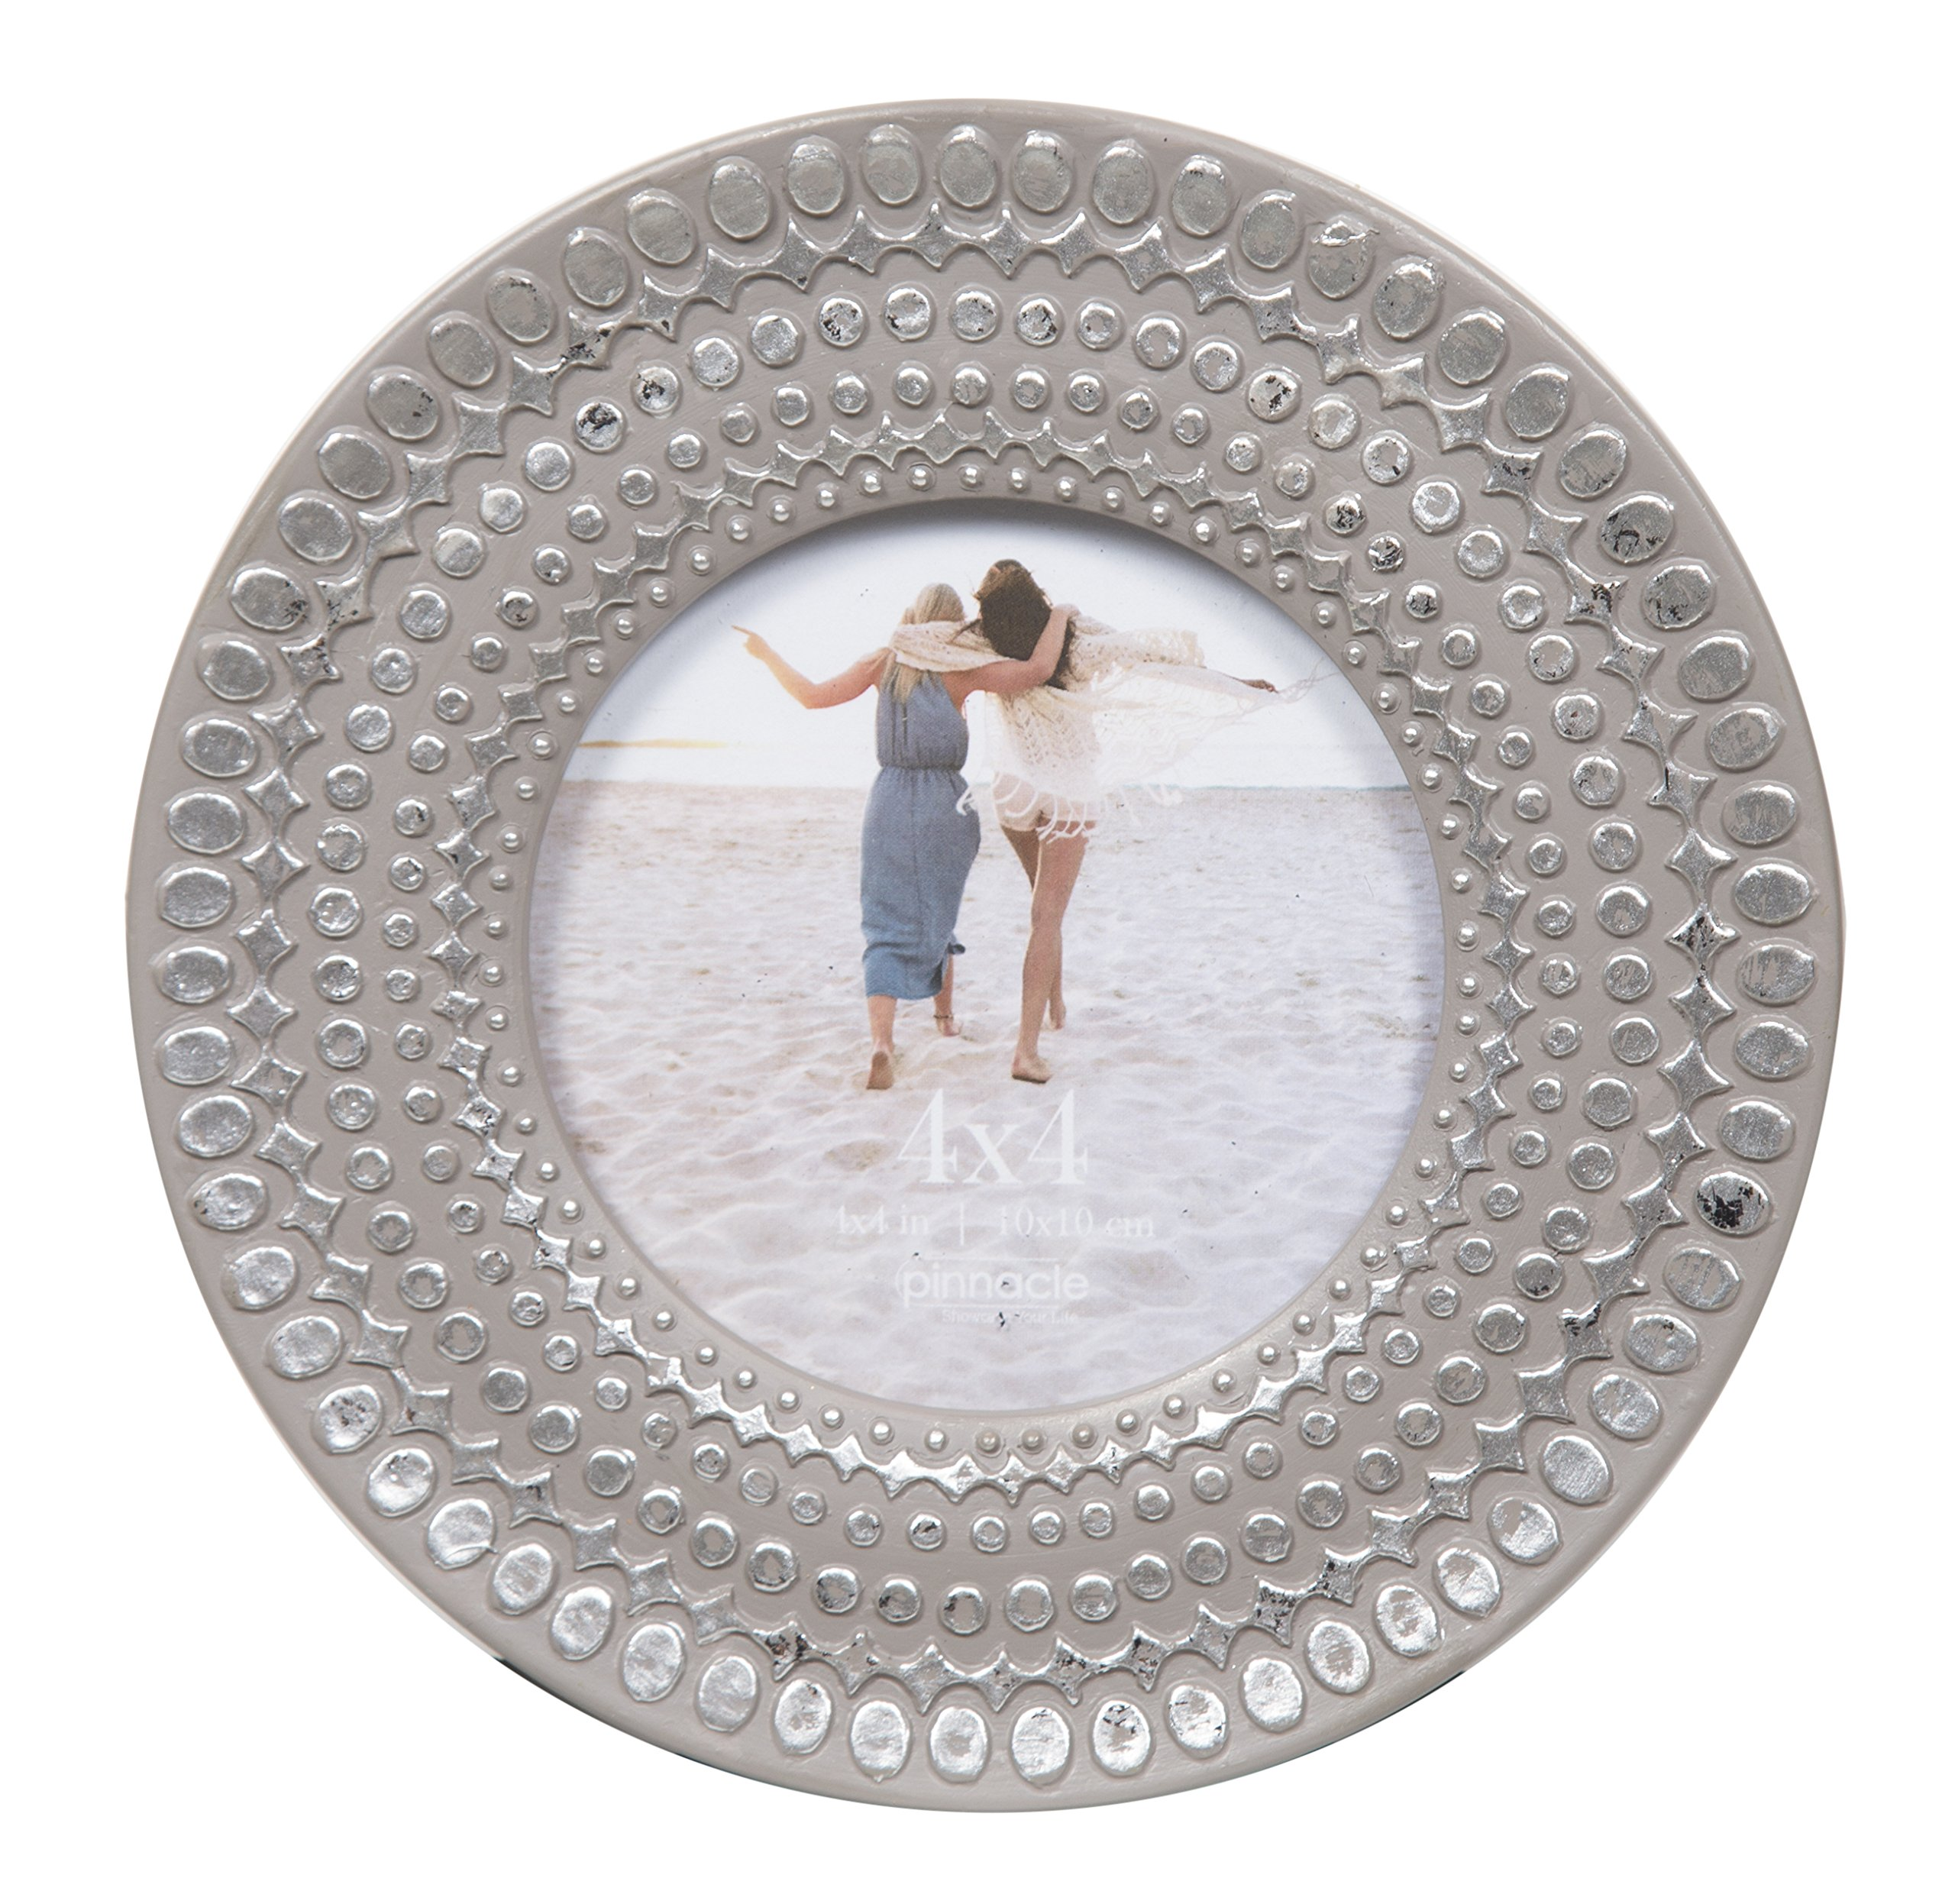 Pinnacle Frames and Accents 4X4 Grey Circle Frame with Silver DOTS, by Pinnacle Frames and Accents